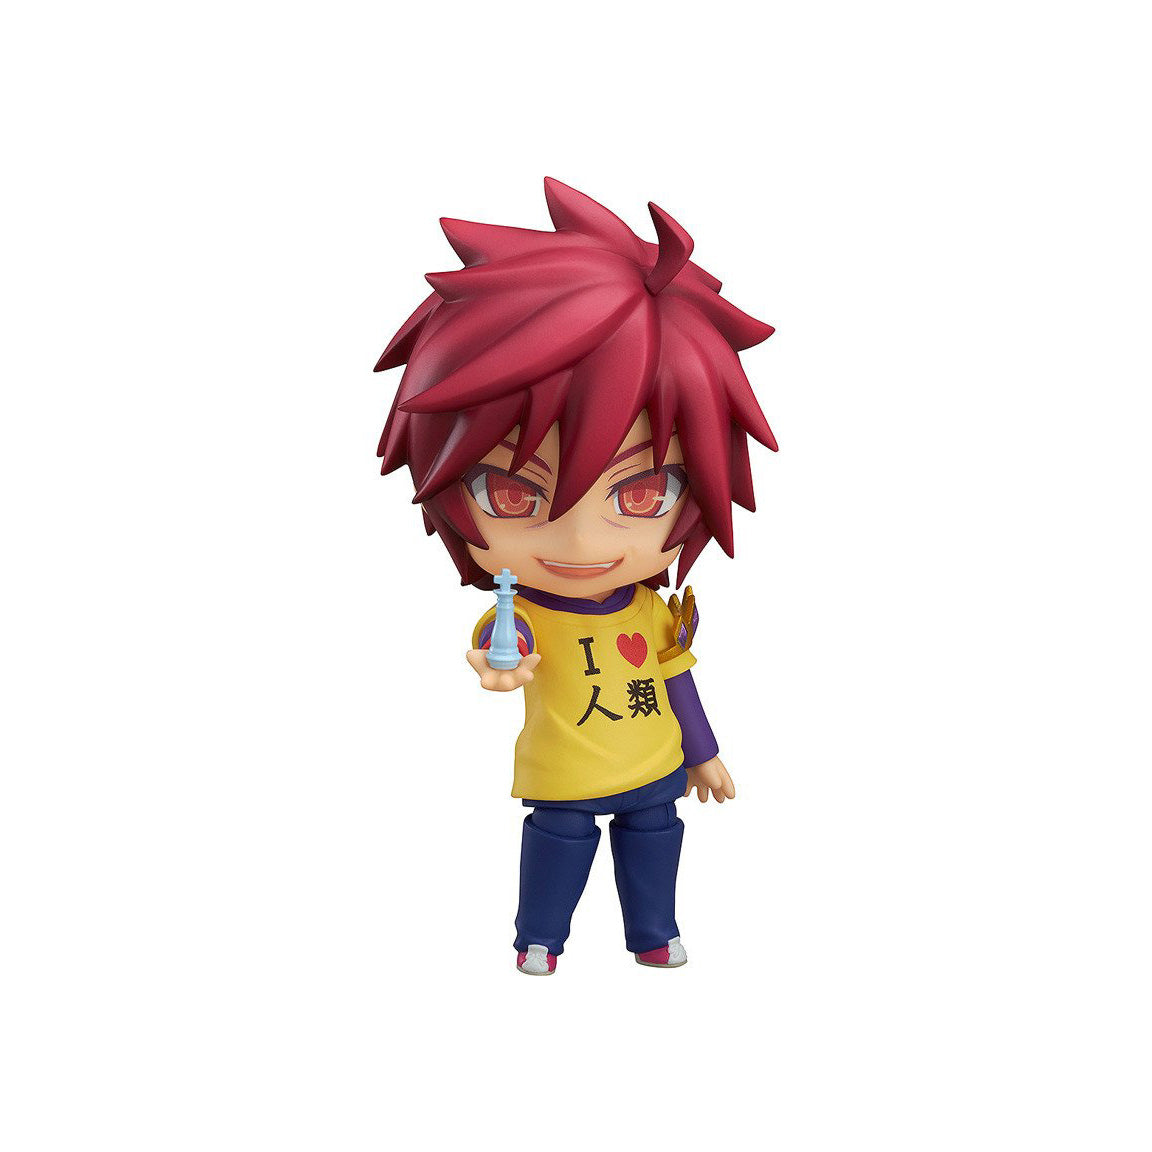 GOOD SMILE No Game No Life Nendoroid Sora Collectible Figurine